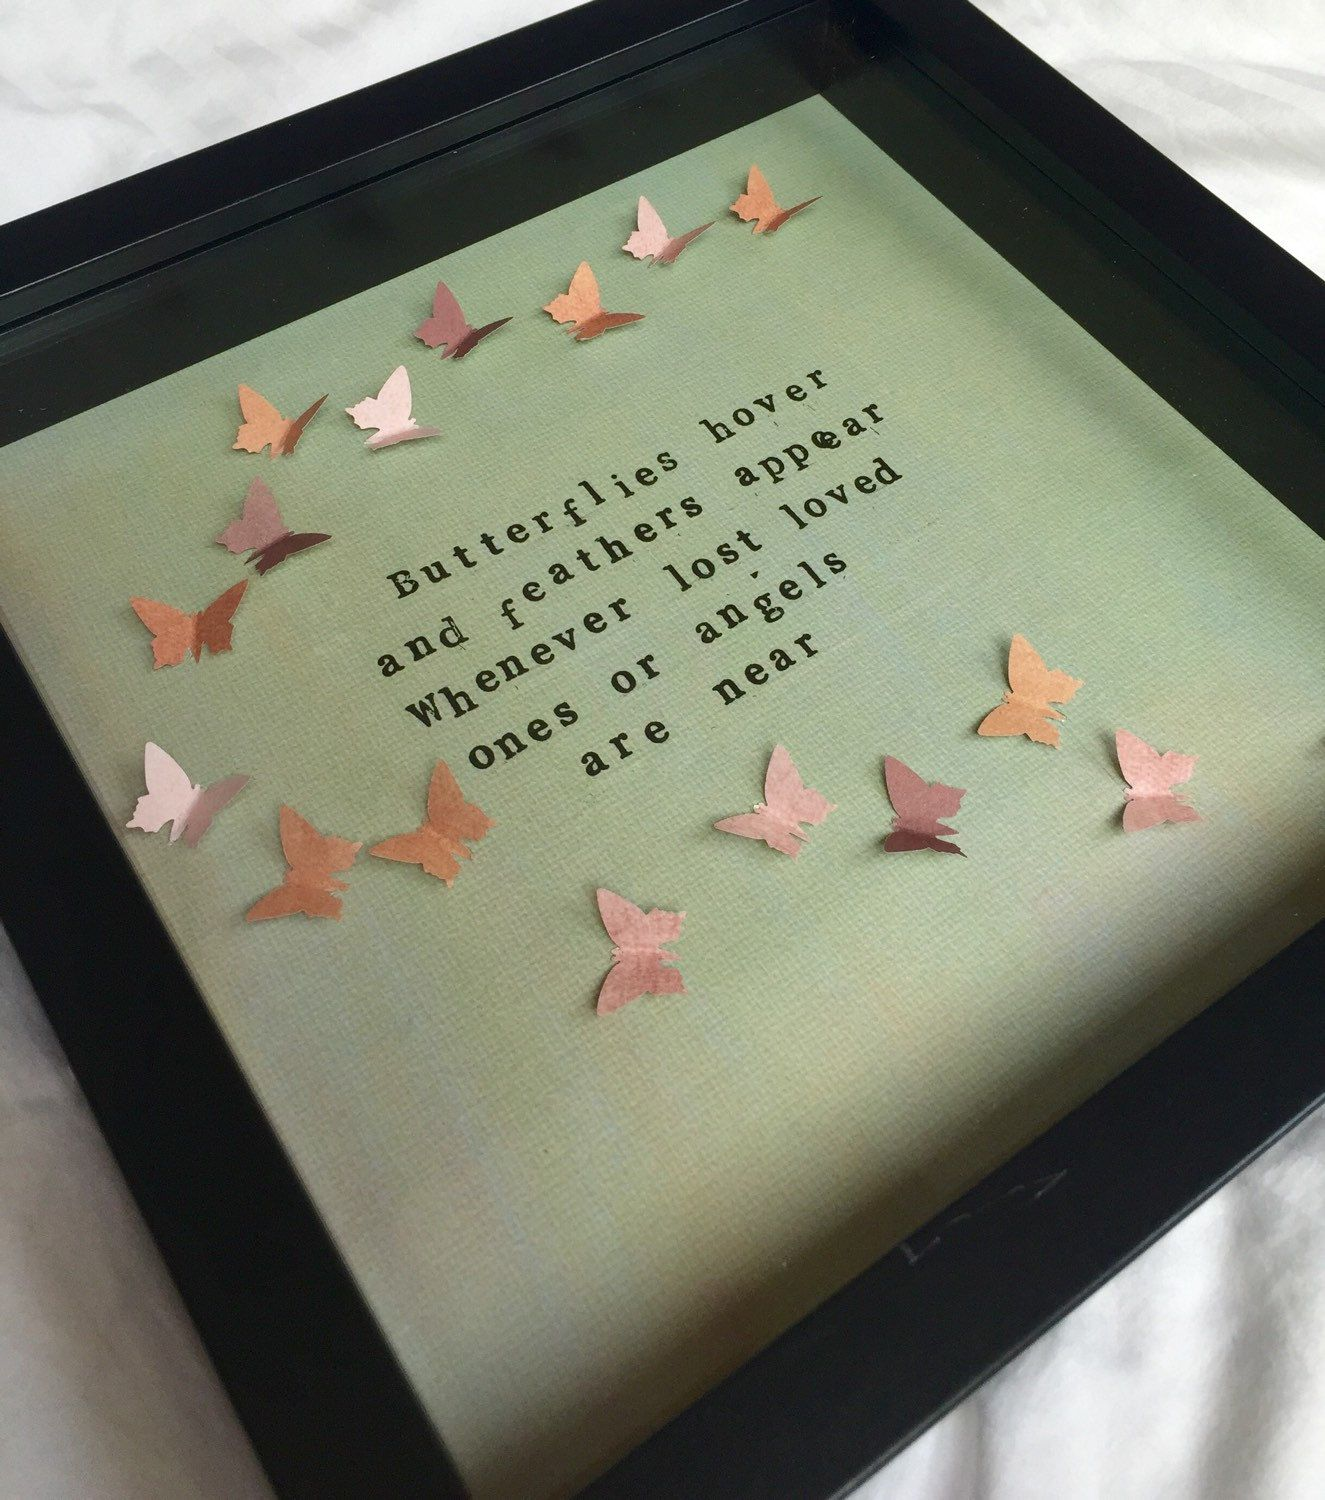 In Remembrance Quotes Of A Loved One Memorial Sympathy Gift Framelost Loved One Angelsframe